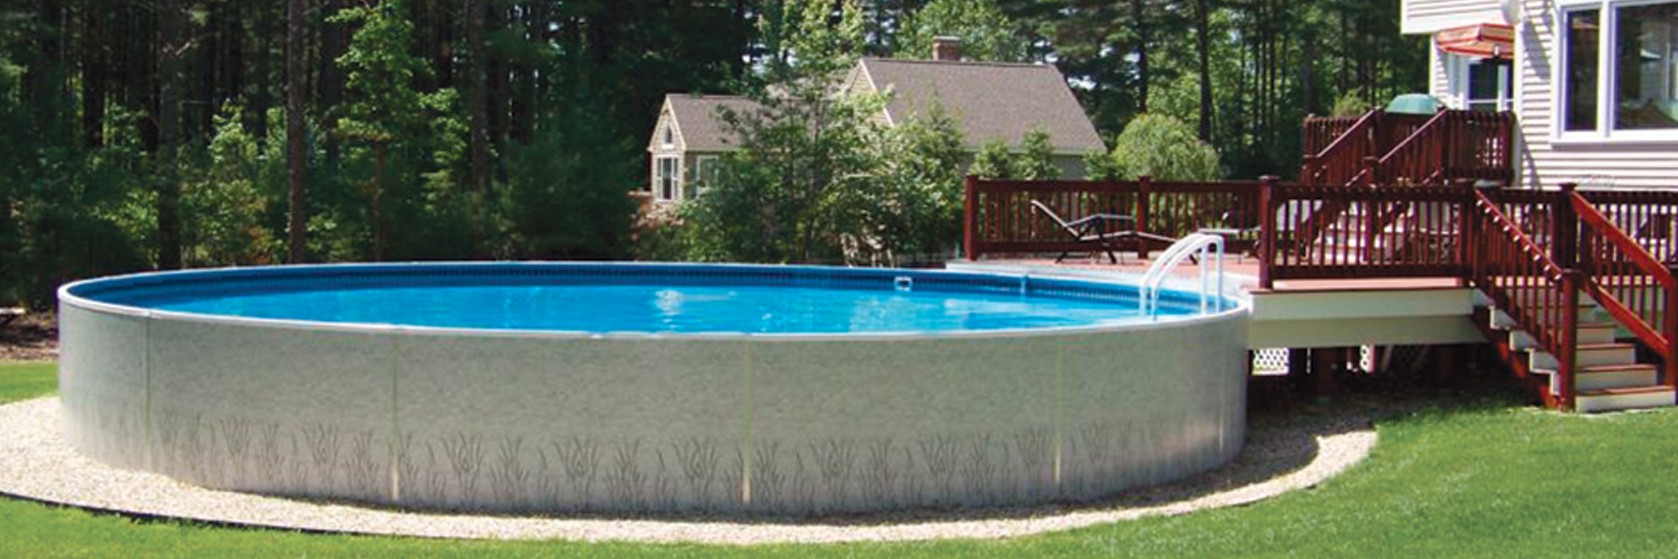 Jacuzzi Pool In Ground Niagara Pool Spa